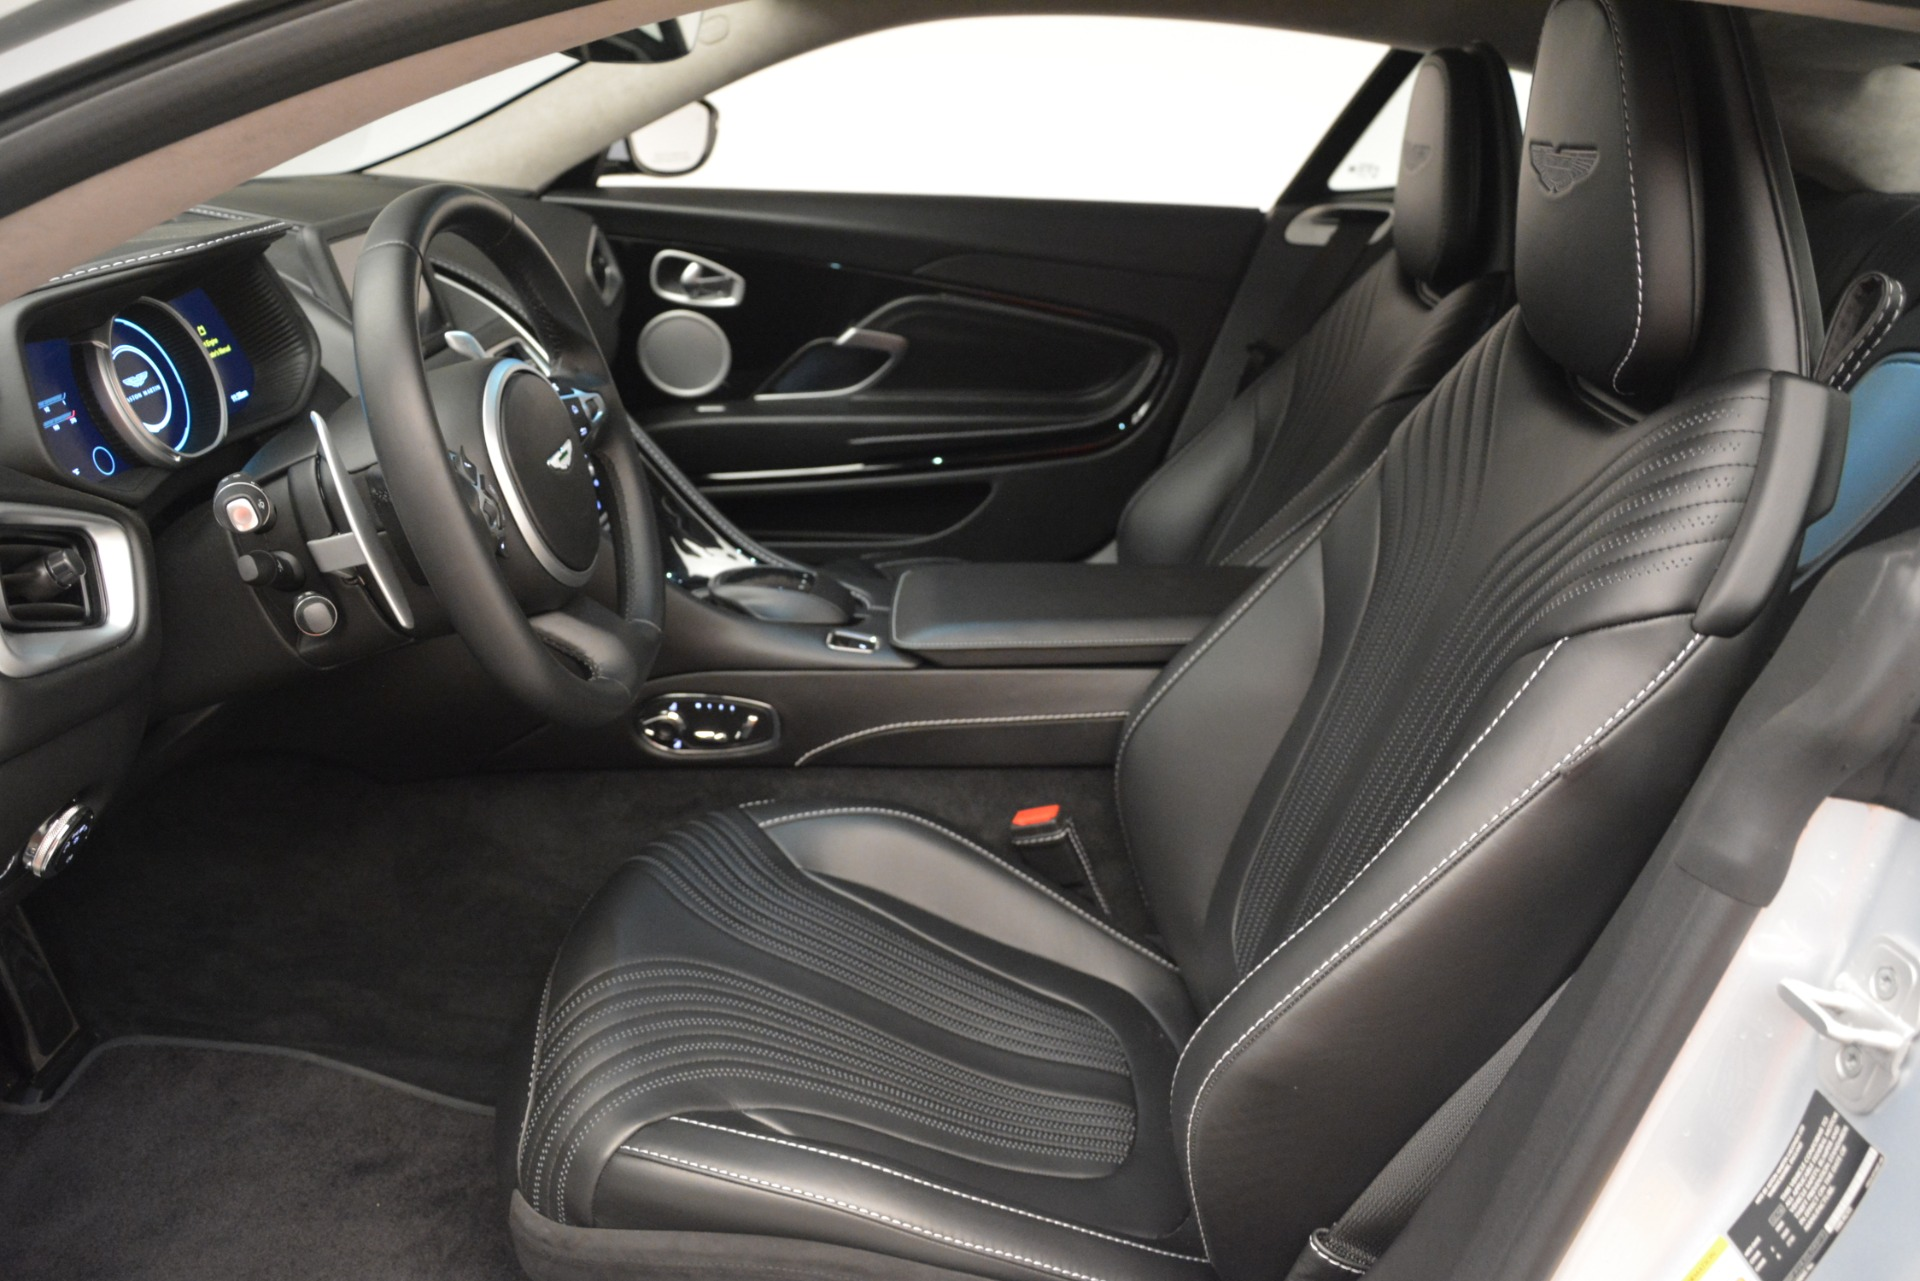 Used 2018 Aston Martin DB11 V12 Coupe For Sale In Westport, CT 3264_p13